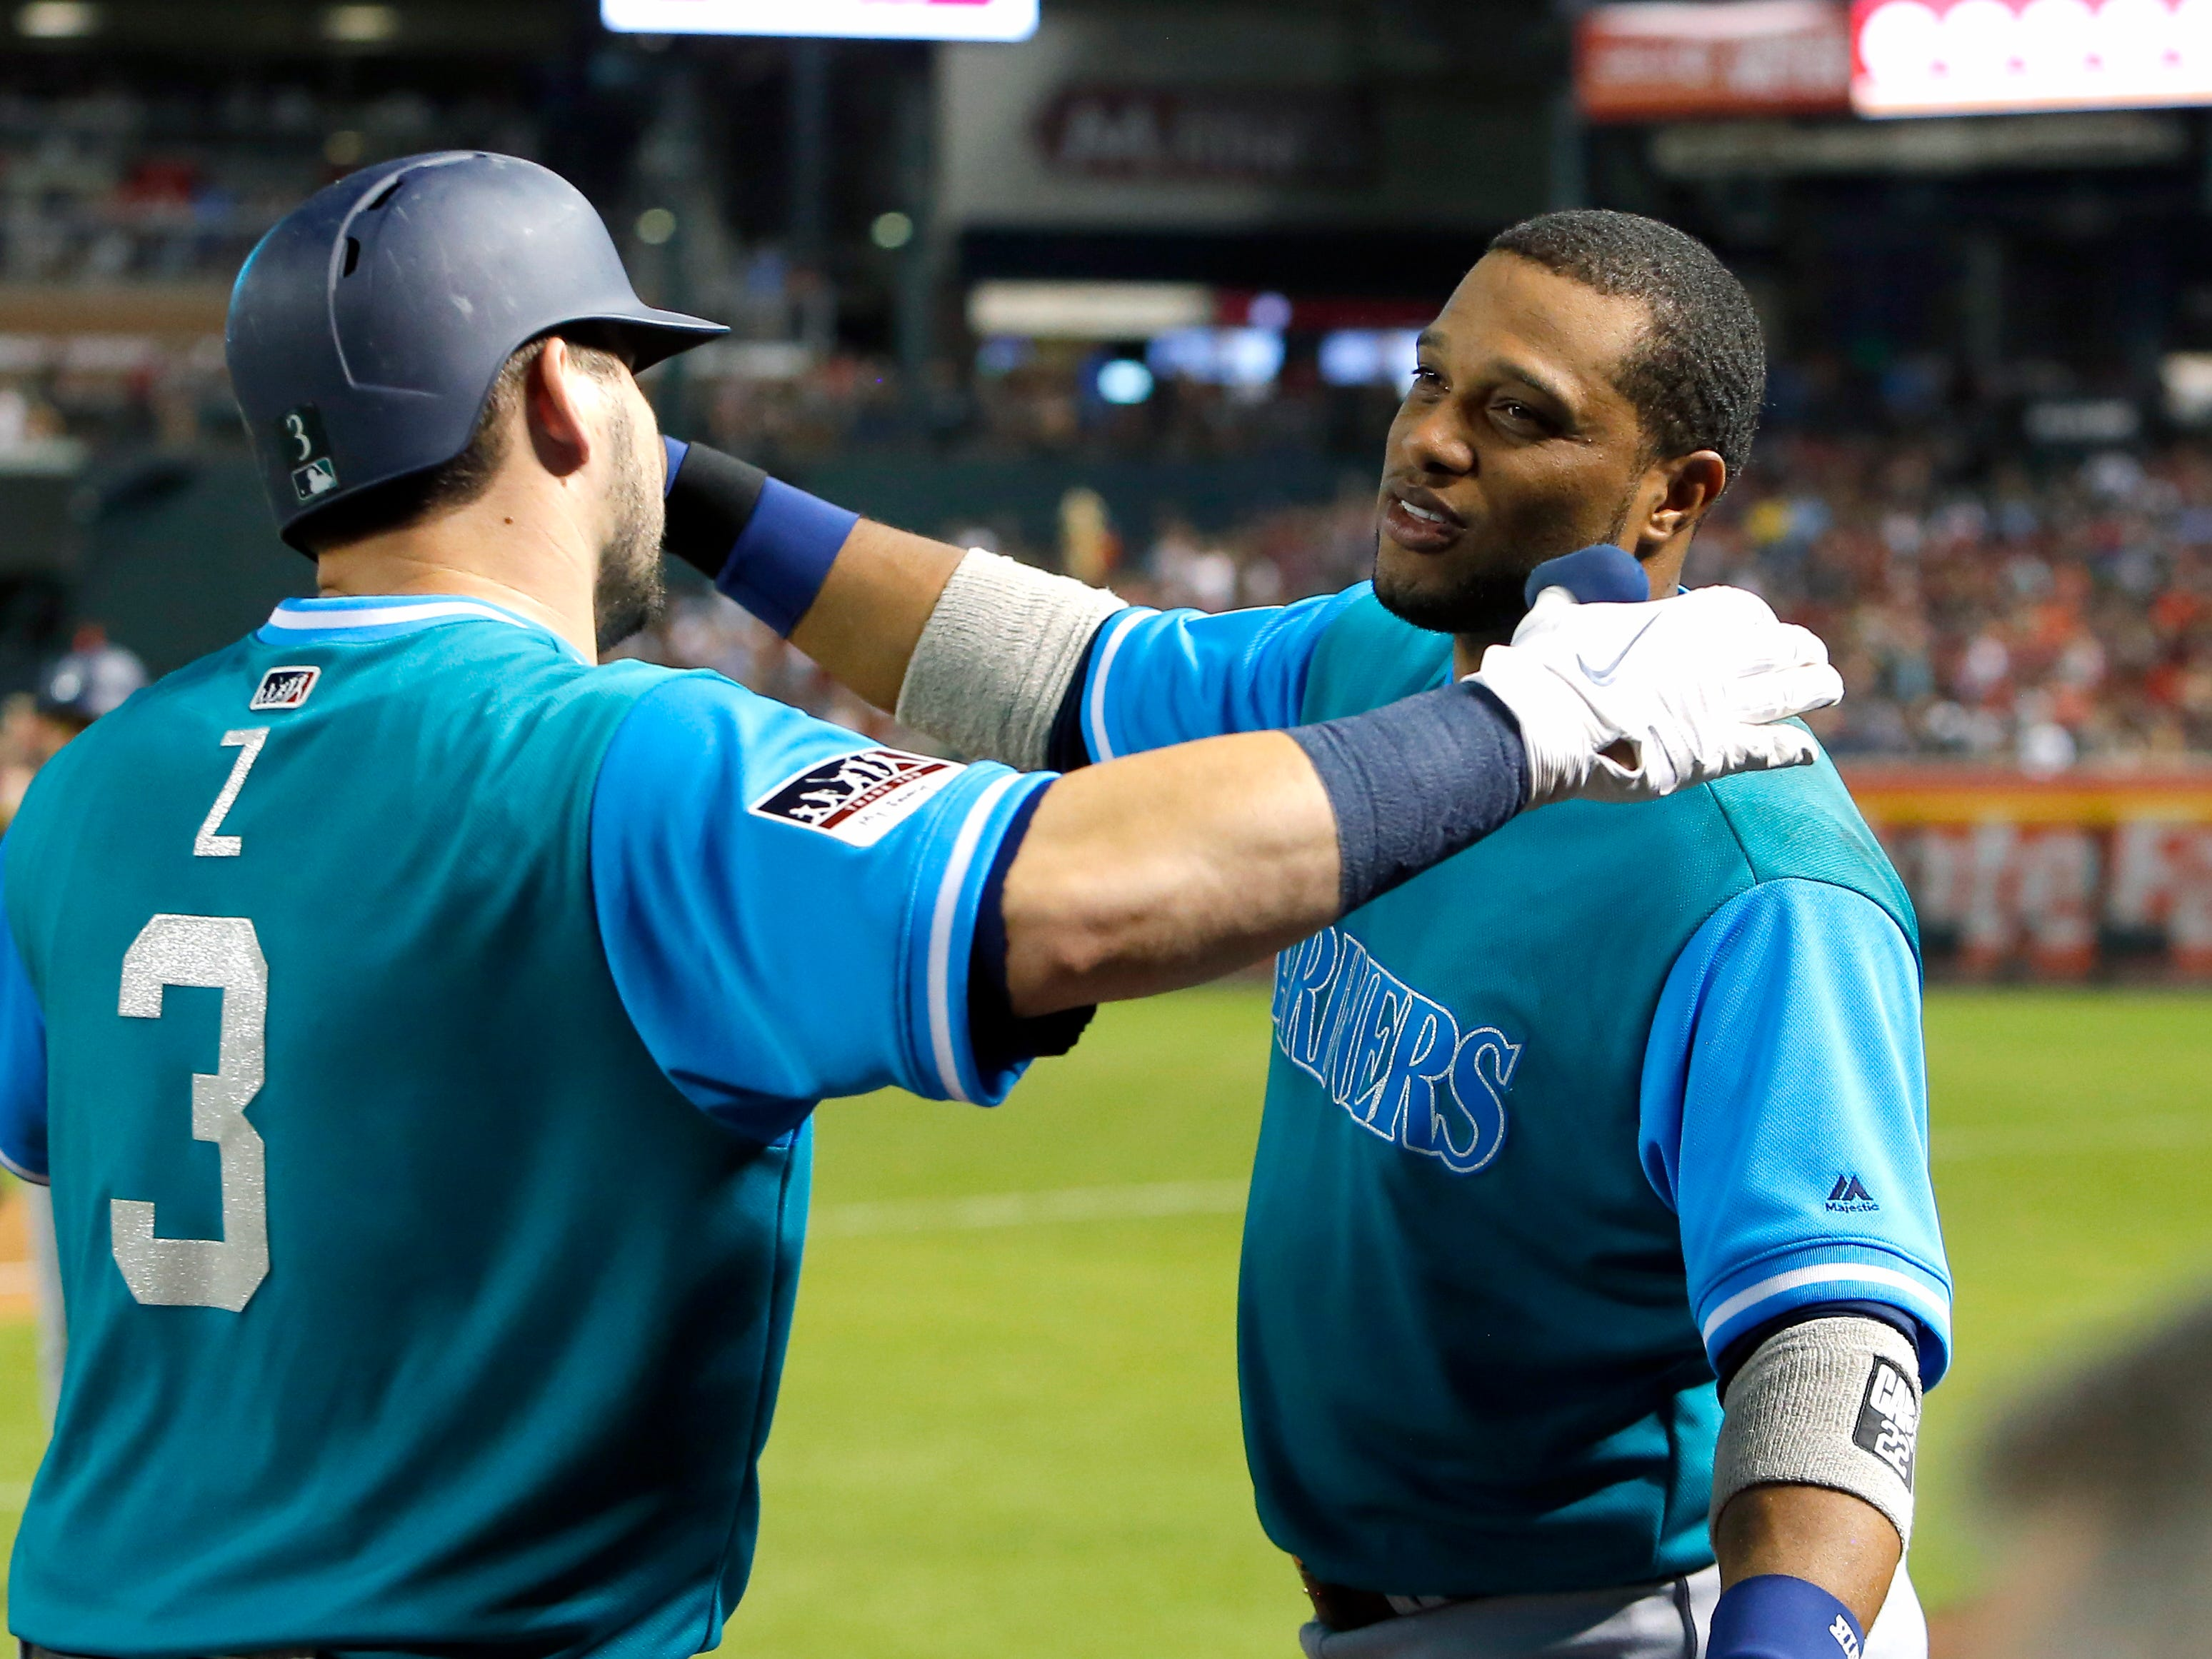 Seattle Mariners' Mike Zunino (3) clebrates with Robinson Cano after hitting a solo homerun against the Arizona Diamondbacks in the sixth inning during a baseball game, Friday, Aug. 24, 2018, in Phoenix.